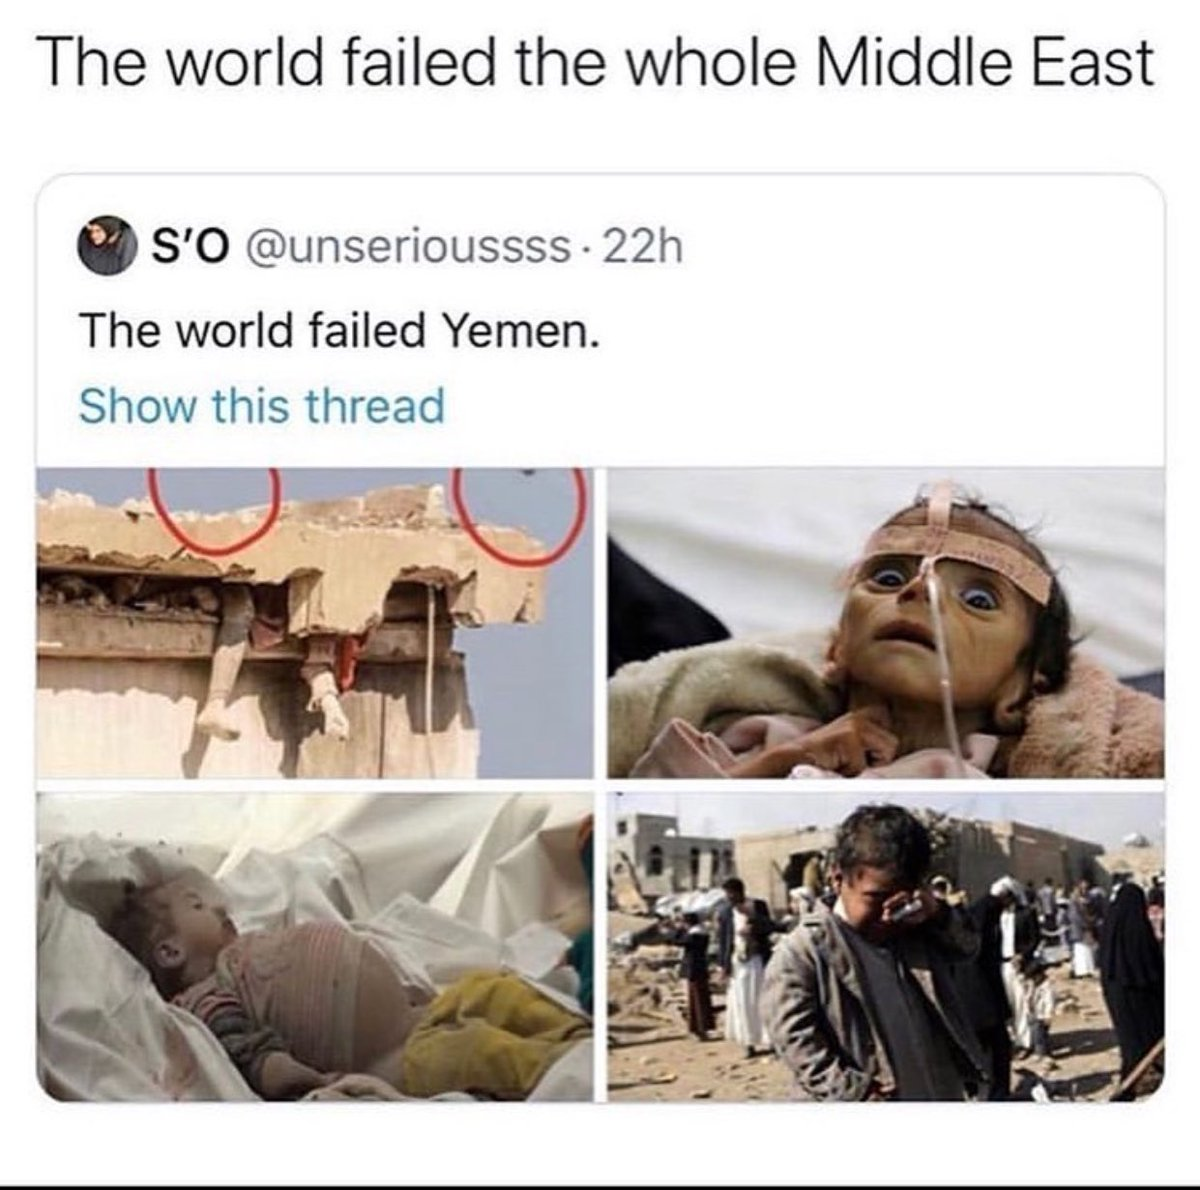 world war 3 is trending but can we please talk about the people in Yemen right now?? https://t.co/YPqZDha60Z